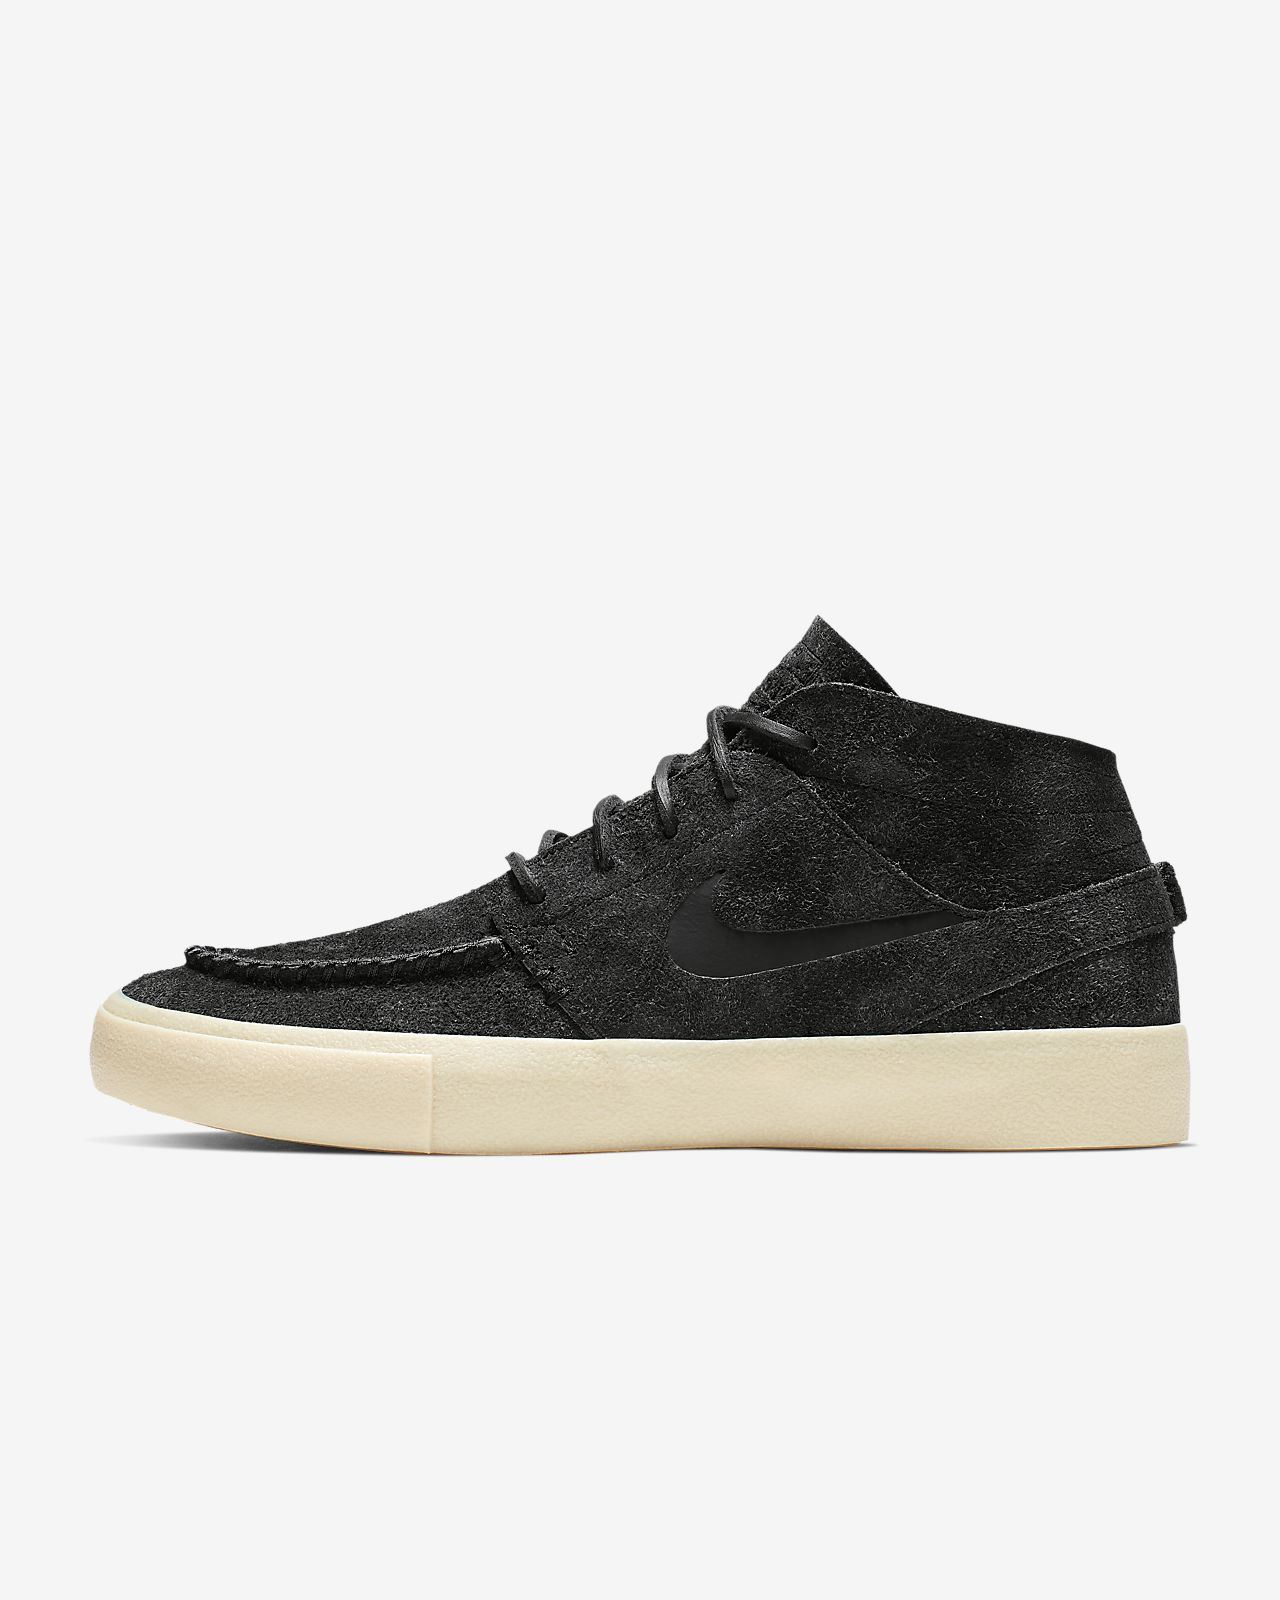 Chaussure de skateboard Nike SB Zoom Stefan Janoski Mid Crafted pour Homme